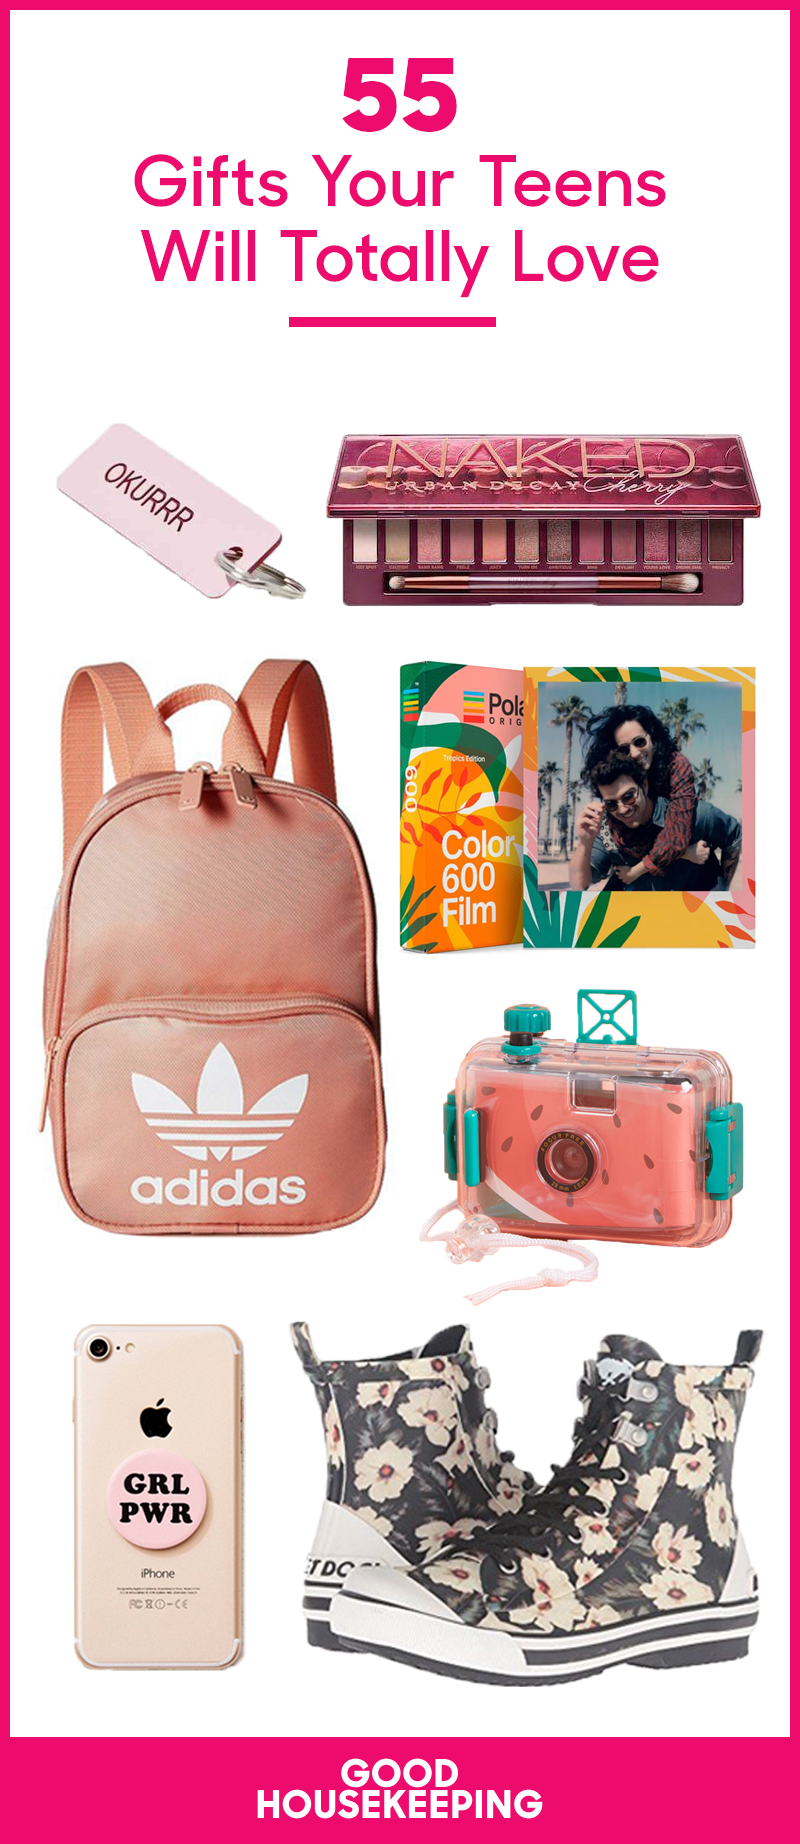 60 Cool Gifts for Teens - Top Boy & Girl Teenager Christmas Gift Ideas